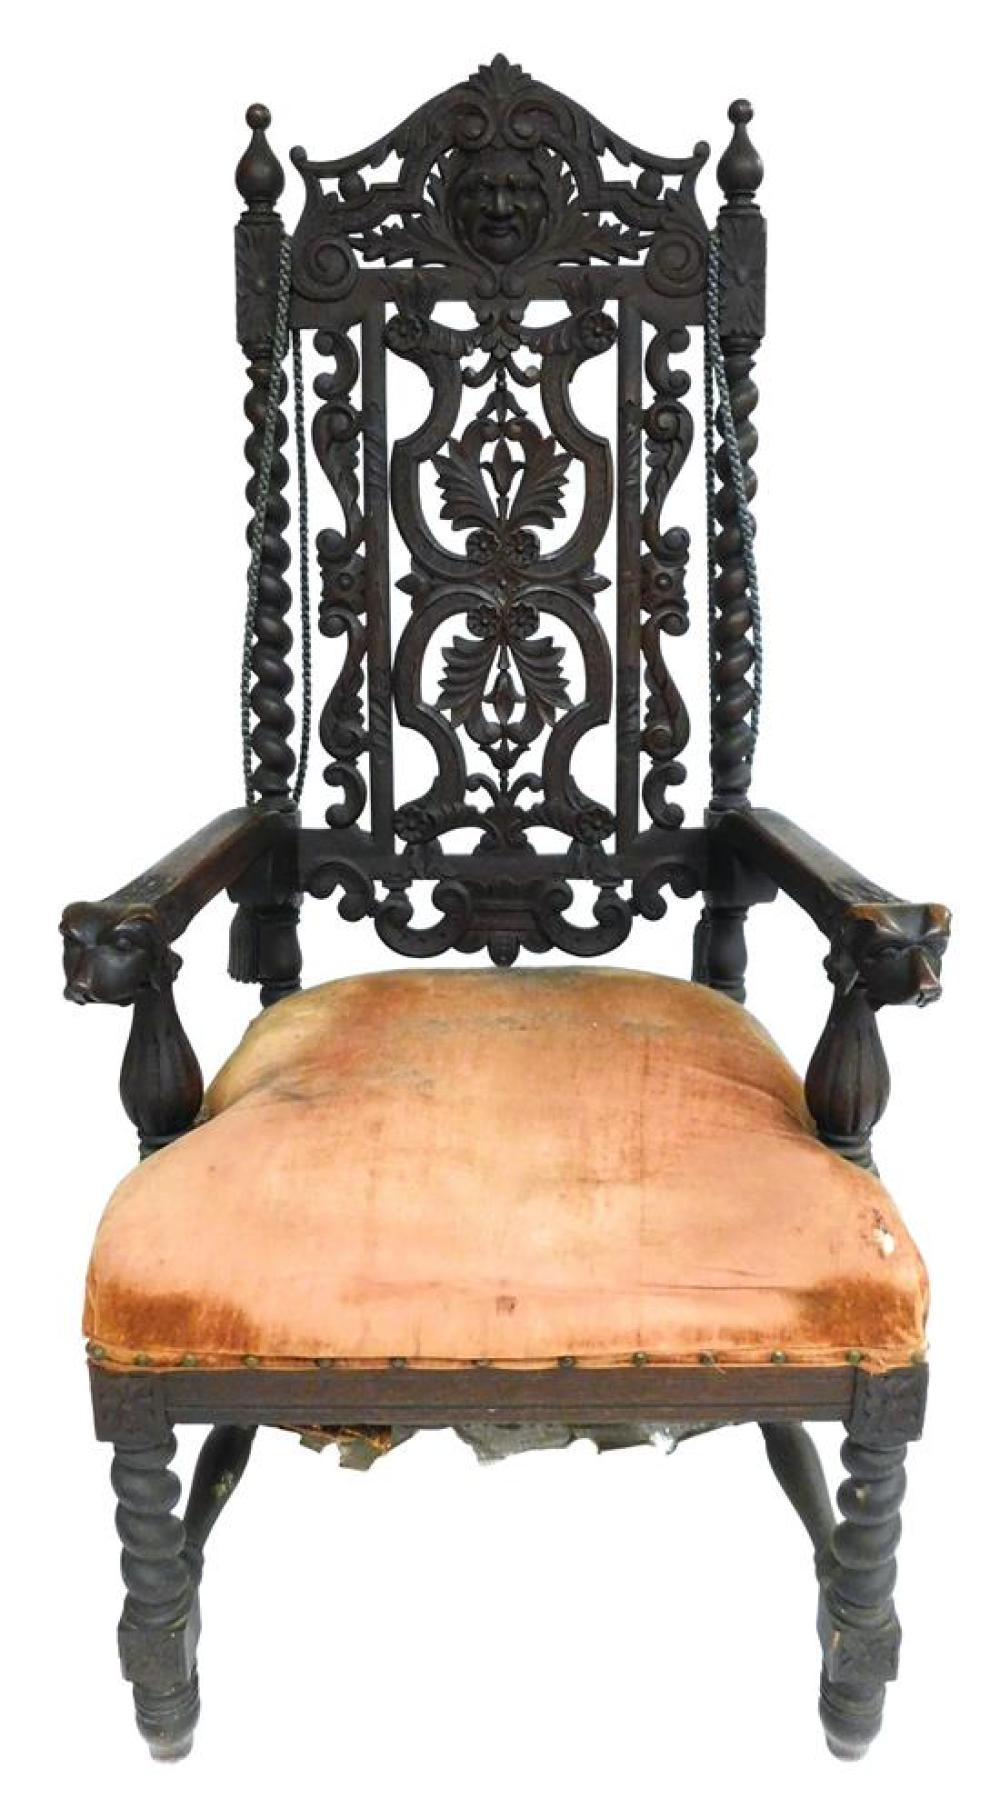 Victorian carved armchair with dog-head hand rests, ornately pierced backrest, upholstered seat, sold as found with seat in poor con...